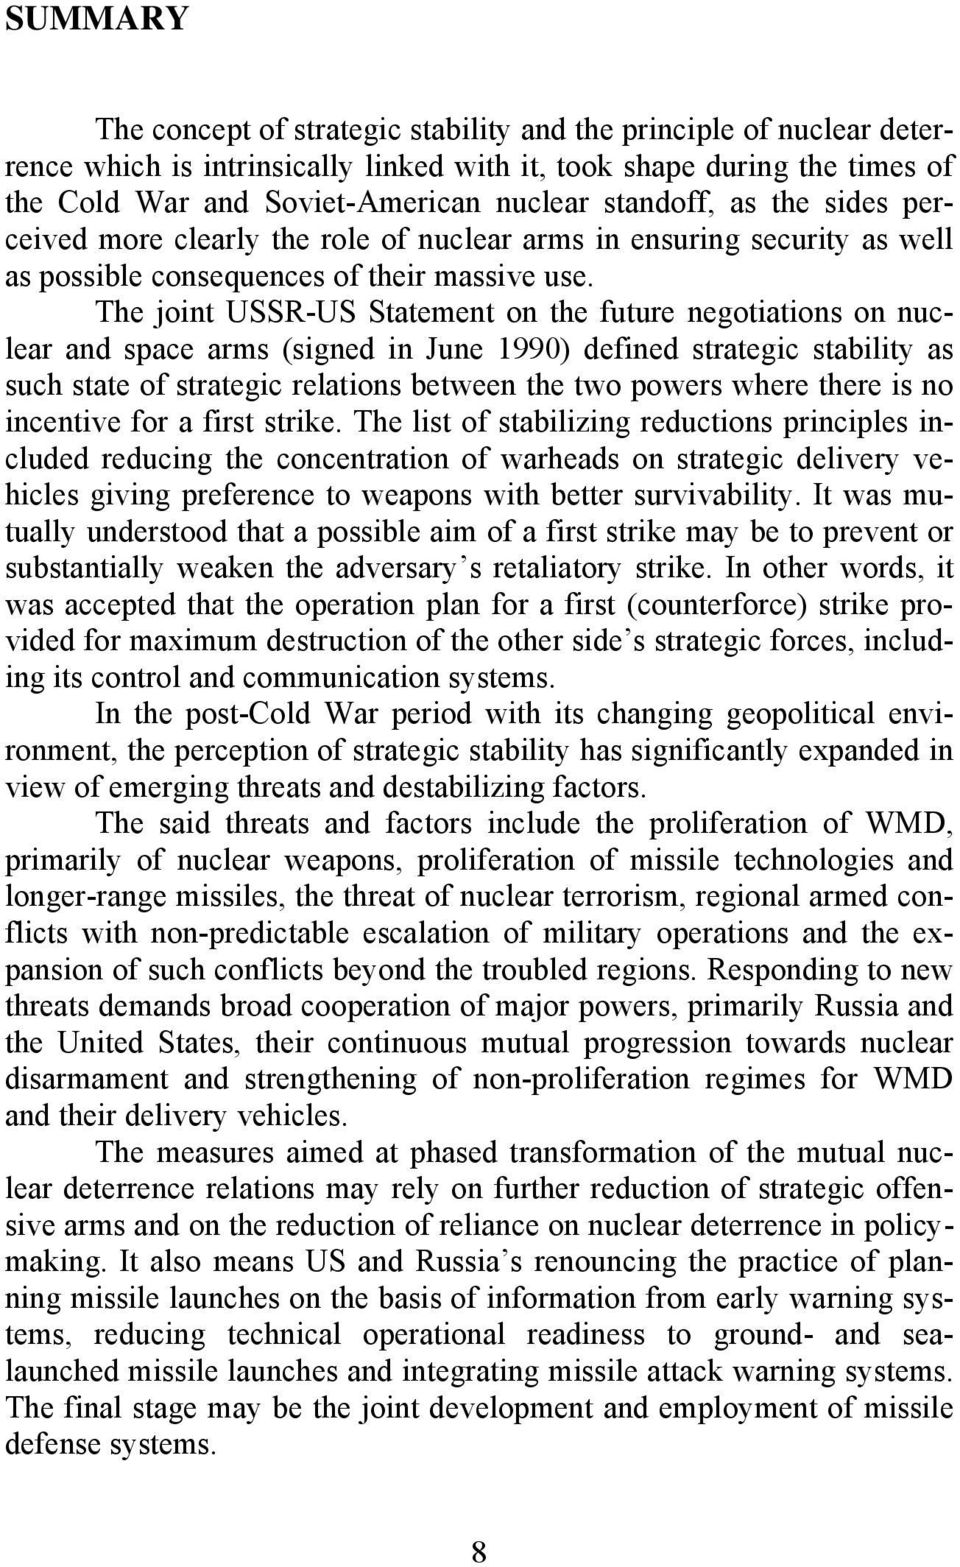 The joint USSR-US Statement on the future negotiations on nuclear and space arms (signed in June 1990) defined strategic stability as such state of strategic relations between the two powers where